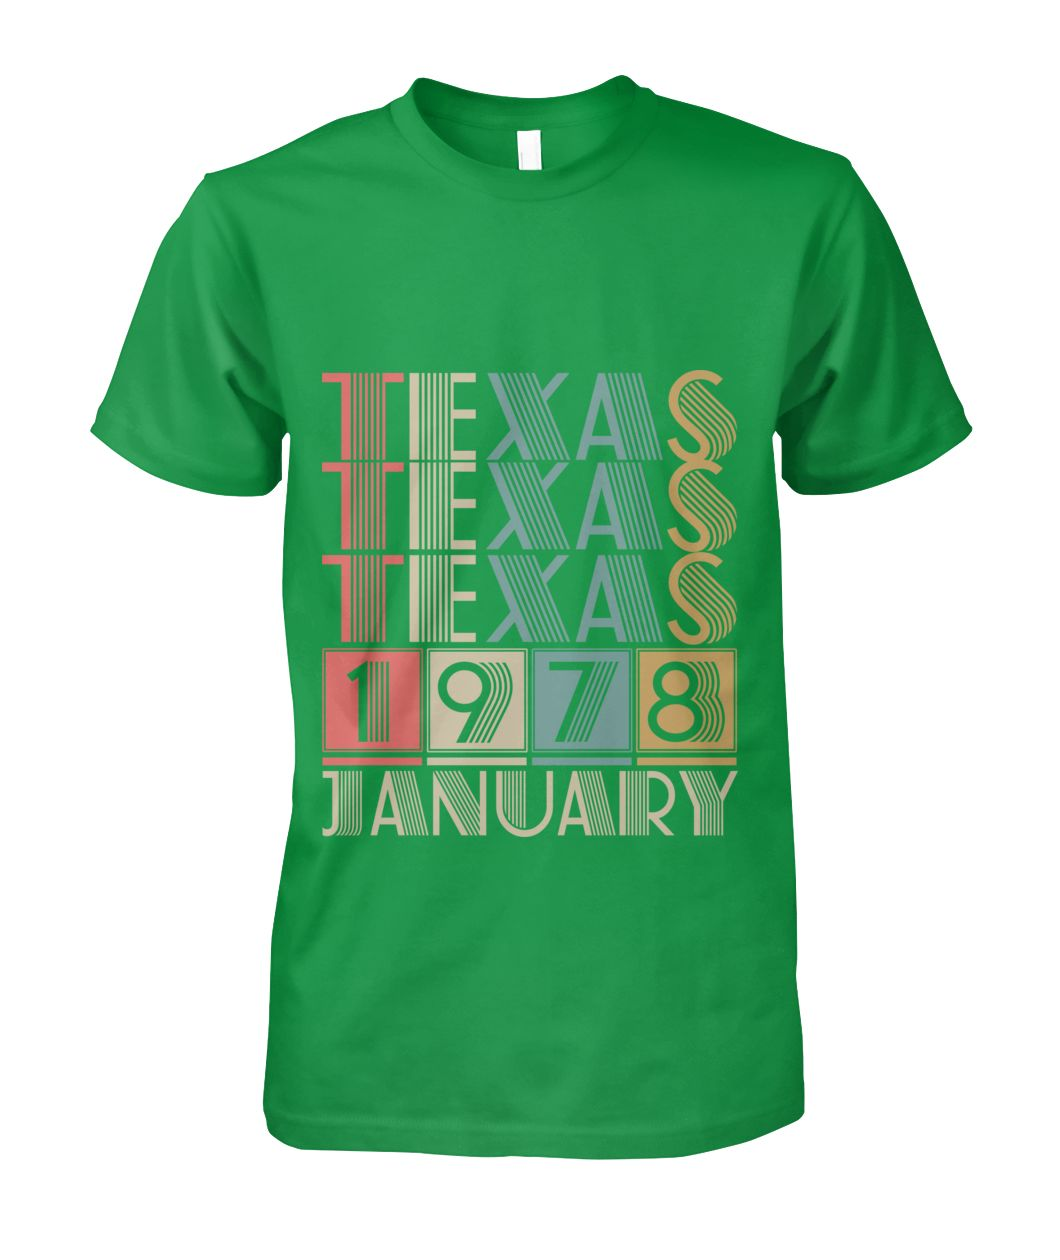 Born in Texas in January 1978 t shirt-Short Sleeves - TEEHOT.COM